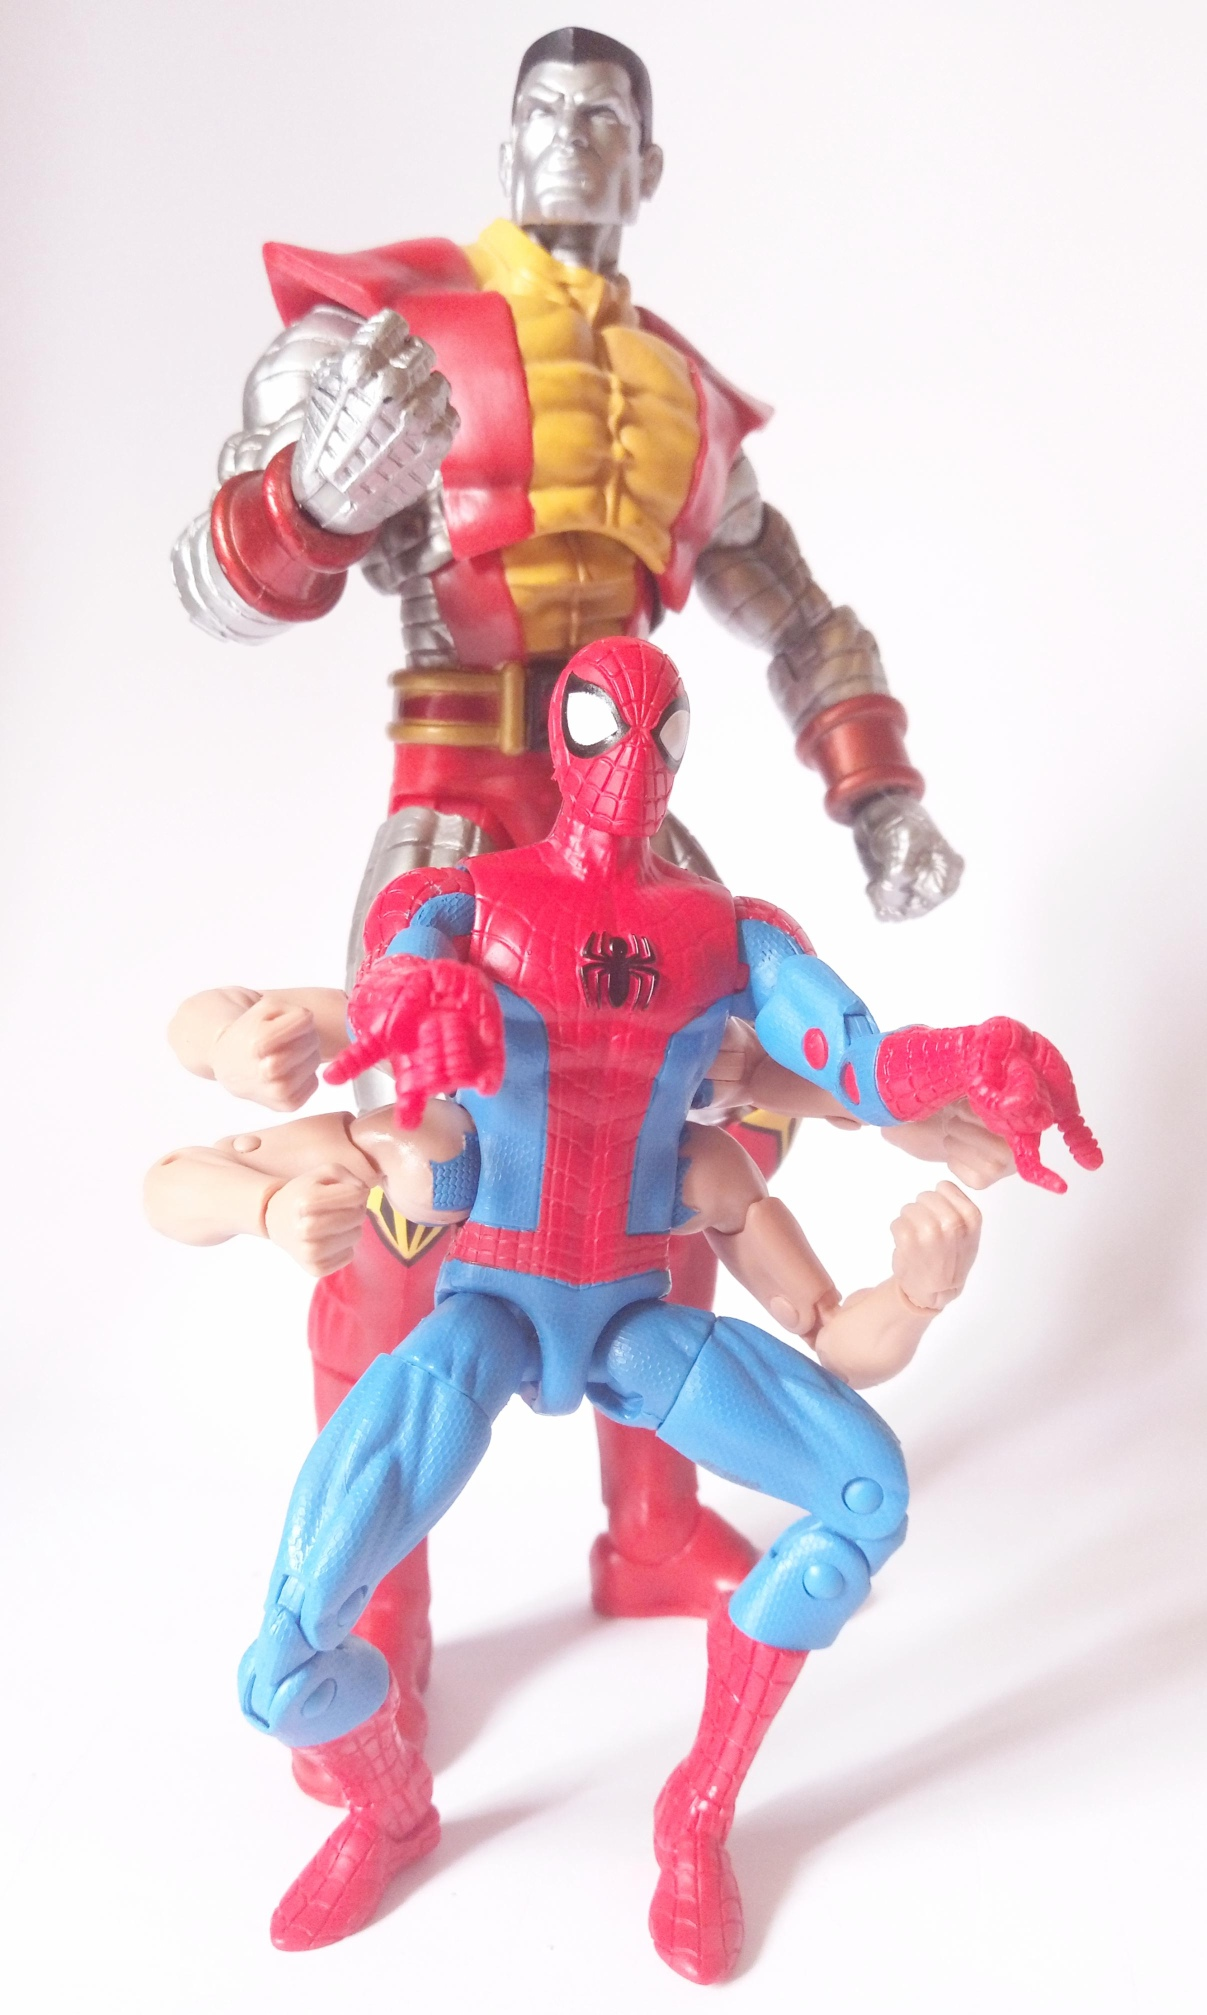 Marvel Legends Sixarms Spiderman vs. Marvel Select Colossus